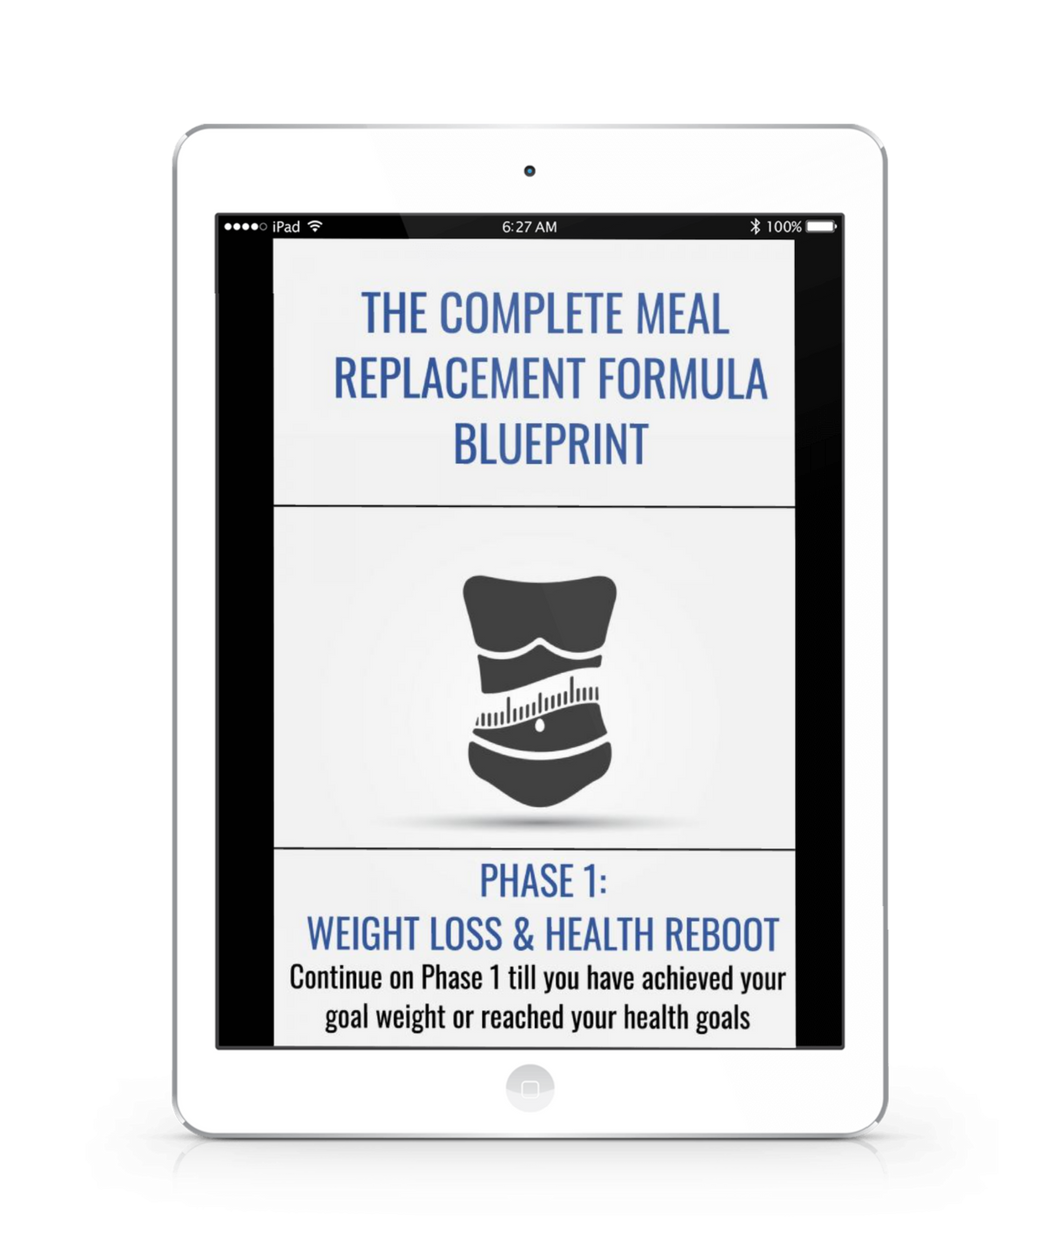 The Complete Meal Replacement Blueprint